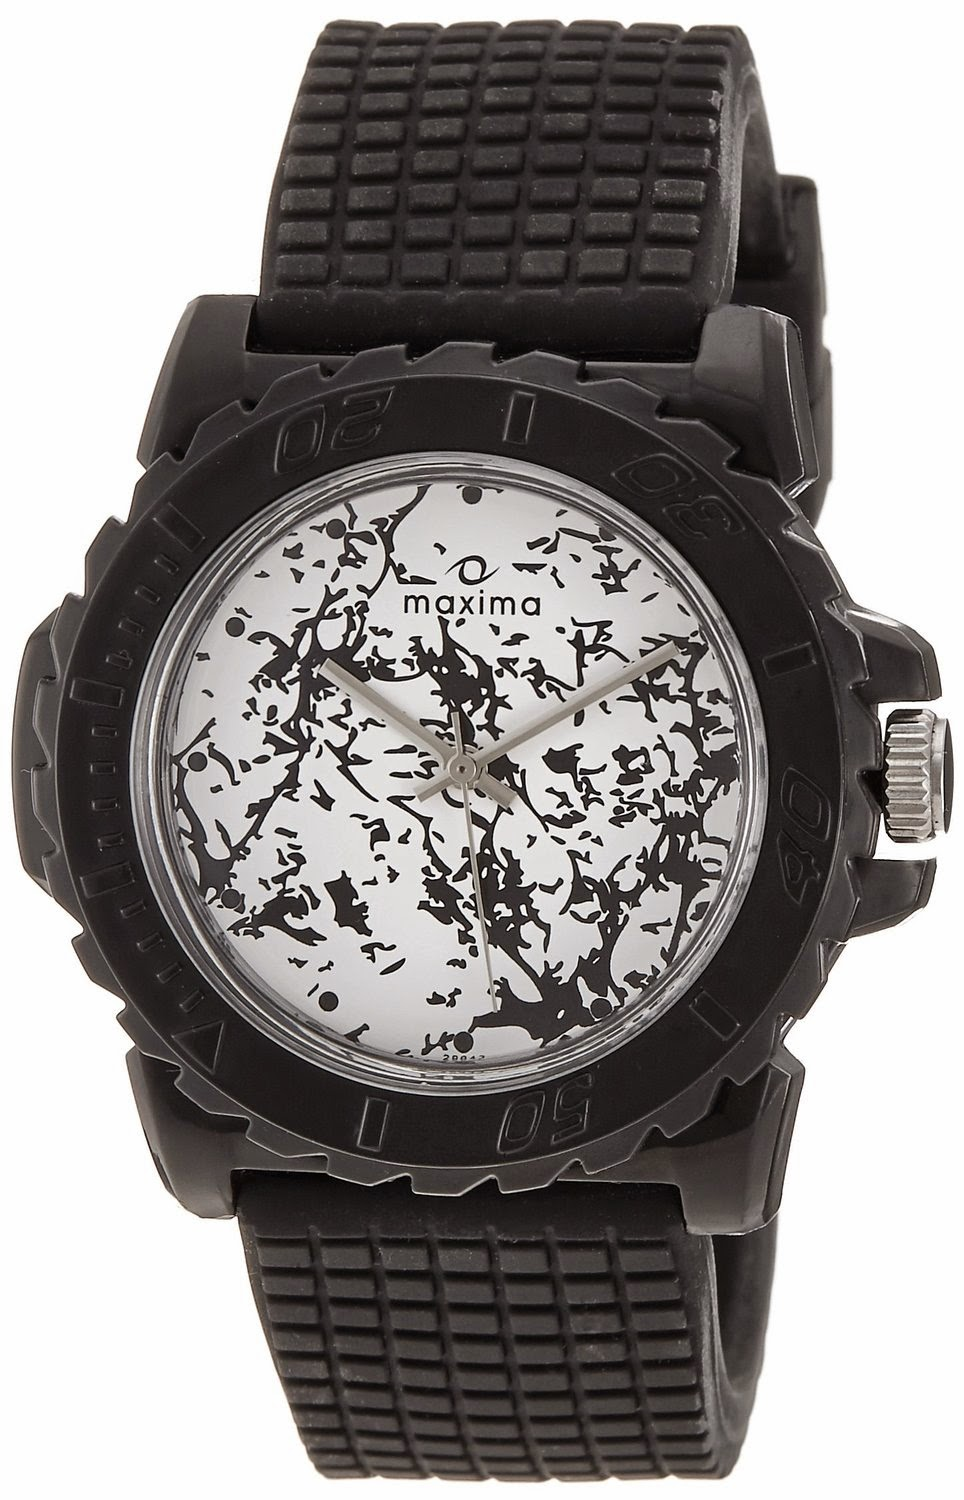 Maxima Avant Garde Analog White and Black Dial Men's Watch for Rs 625 (Price Up)